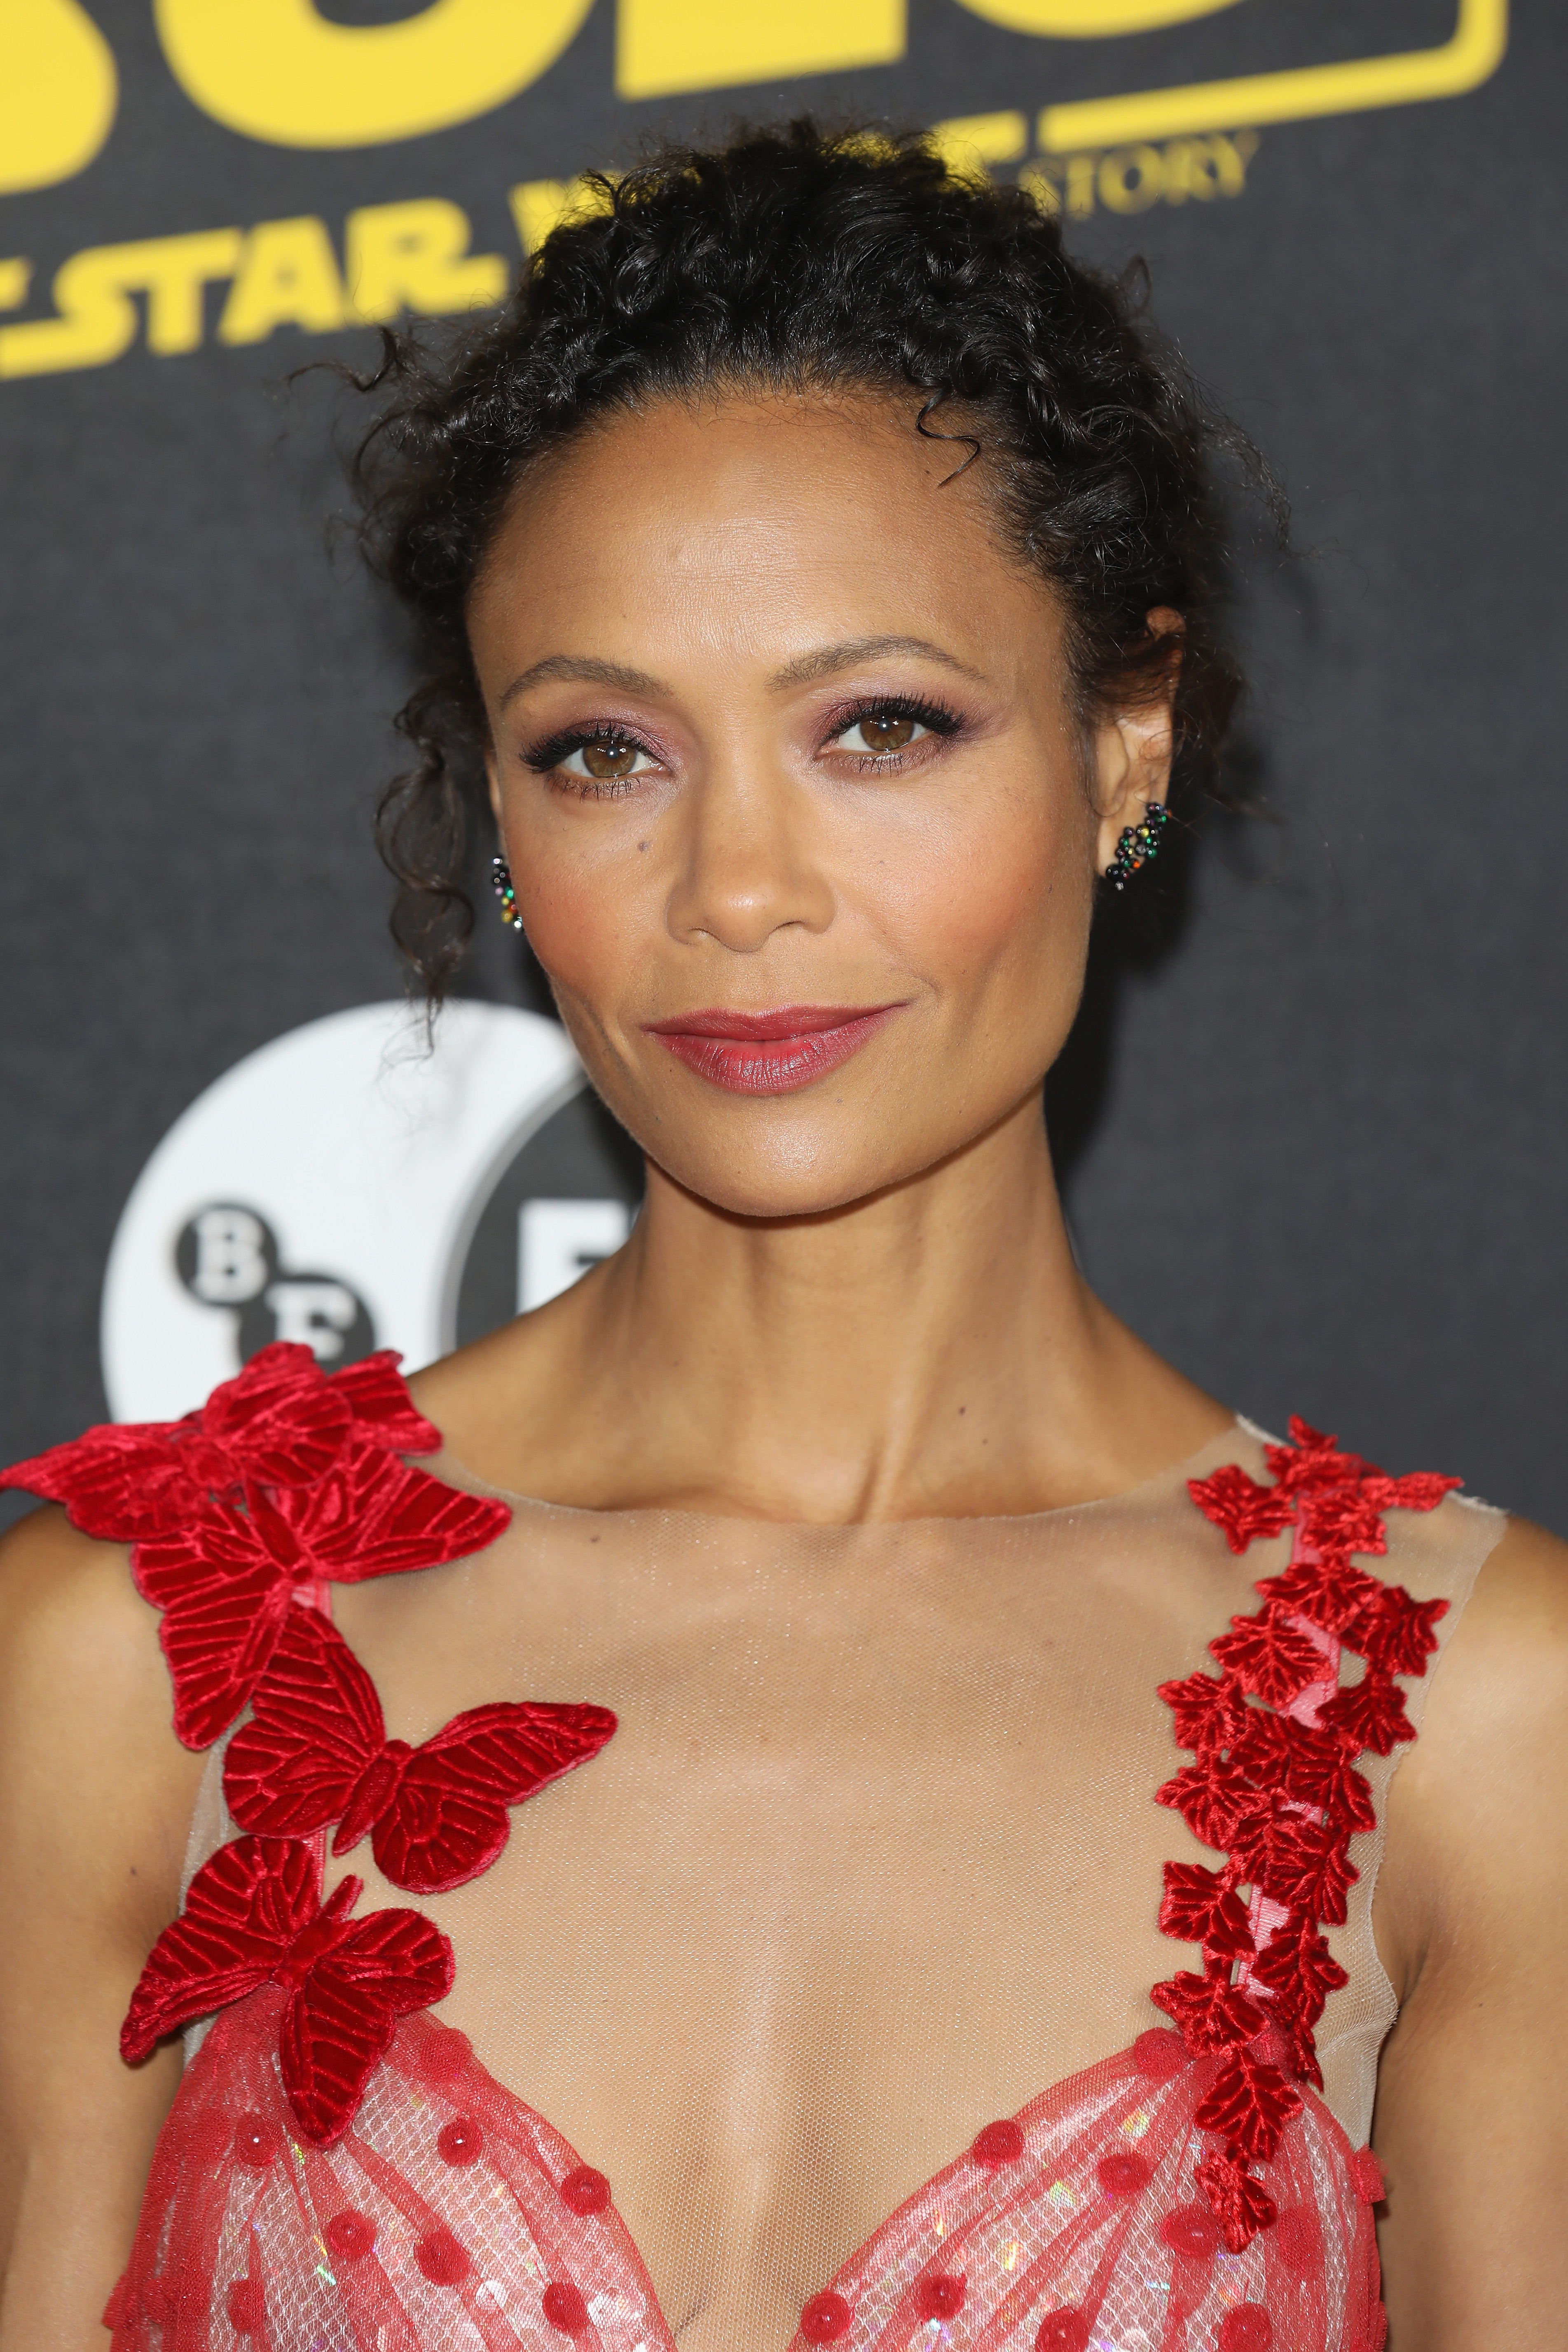 Thandie Newton attends special BFI screening of 'Solo: A Star Wars Story' to celebrate the film's BFI Film Academy trainees at BFI Southbank on May 23, 2018 in London, England.